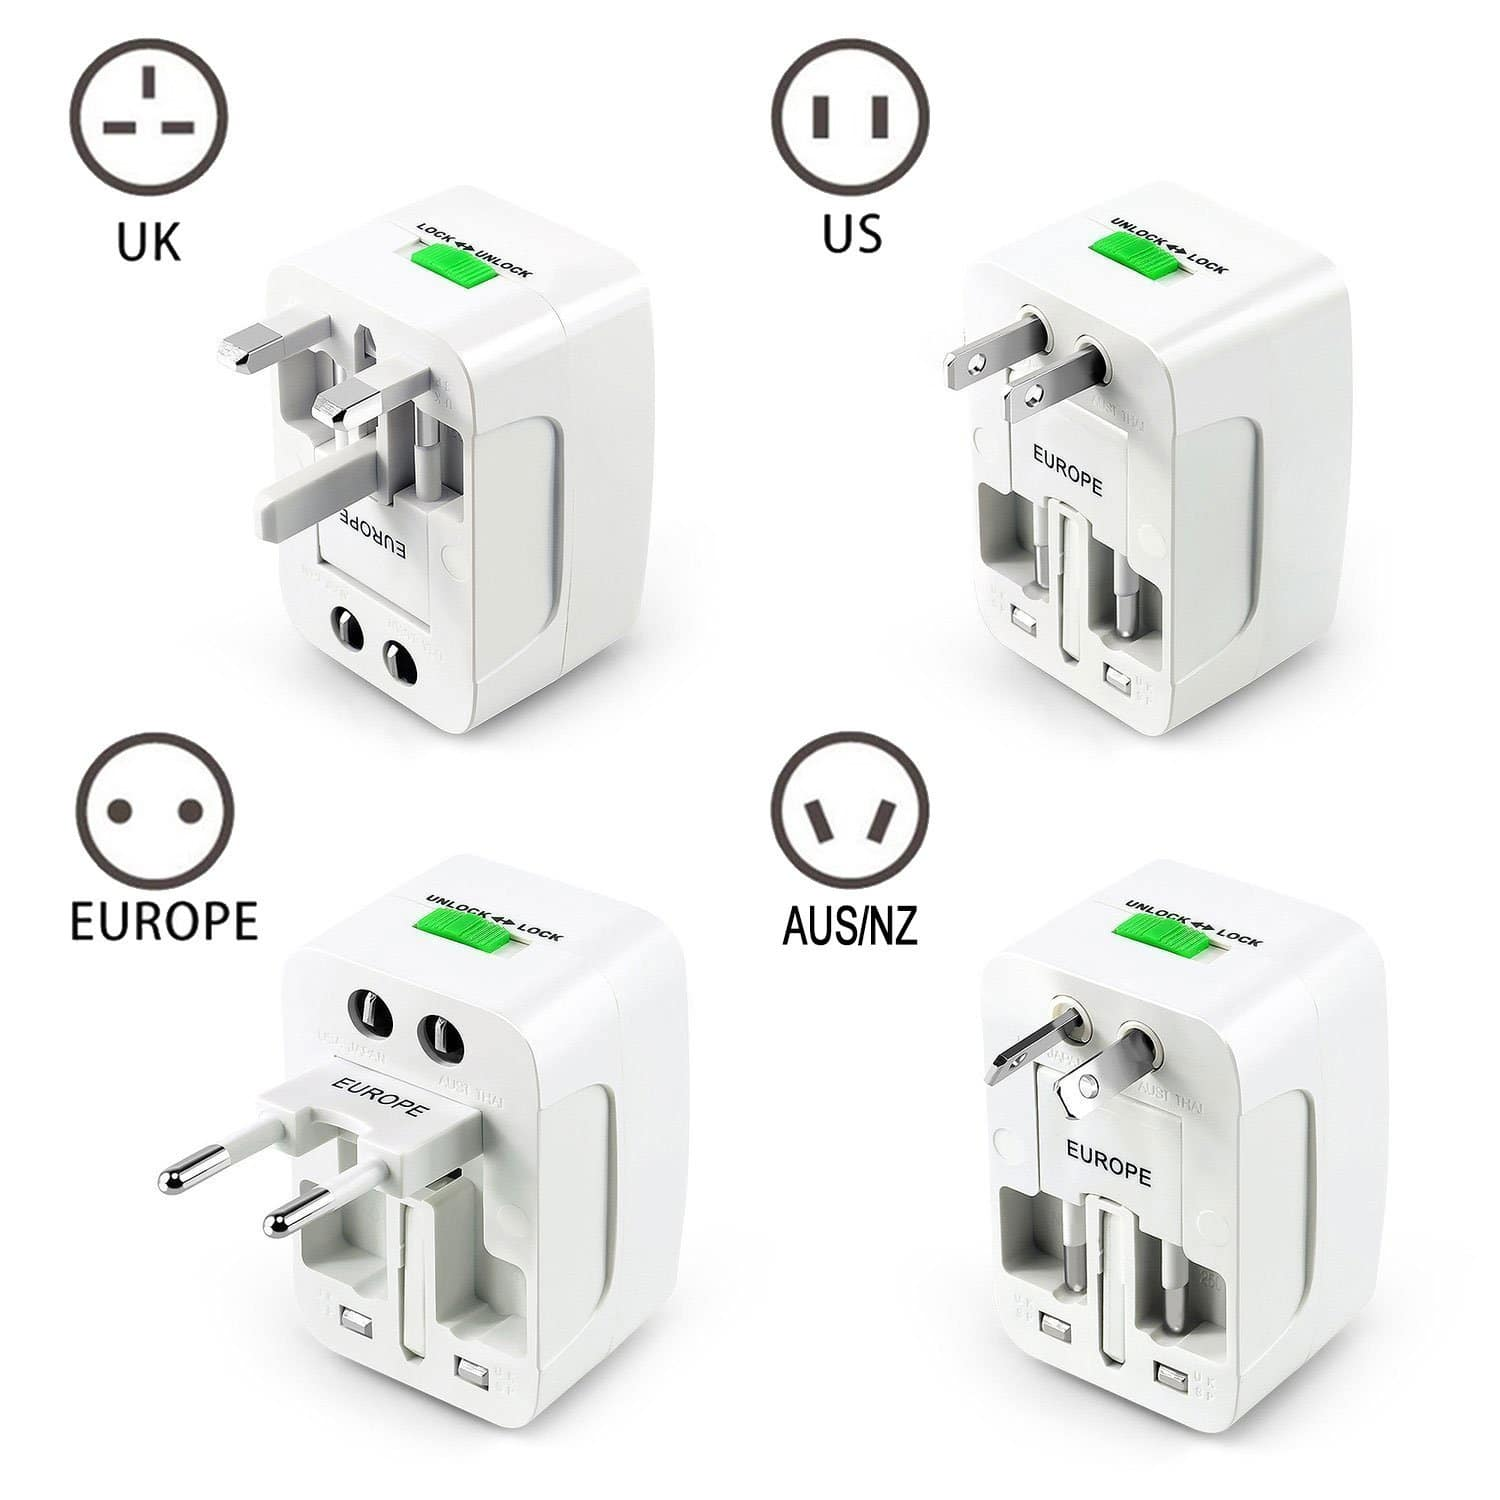 All in One Universal Travel Adapter with 2 USB Charging Ports for $6.99